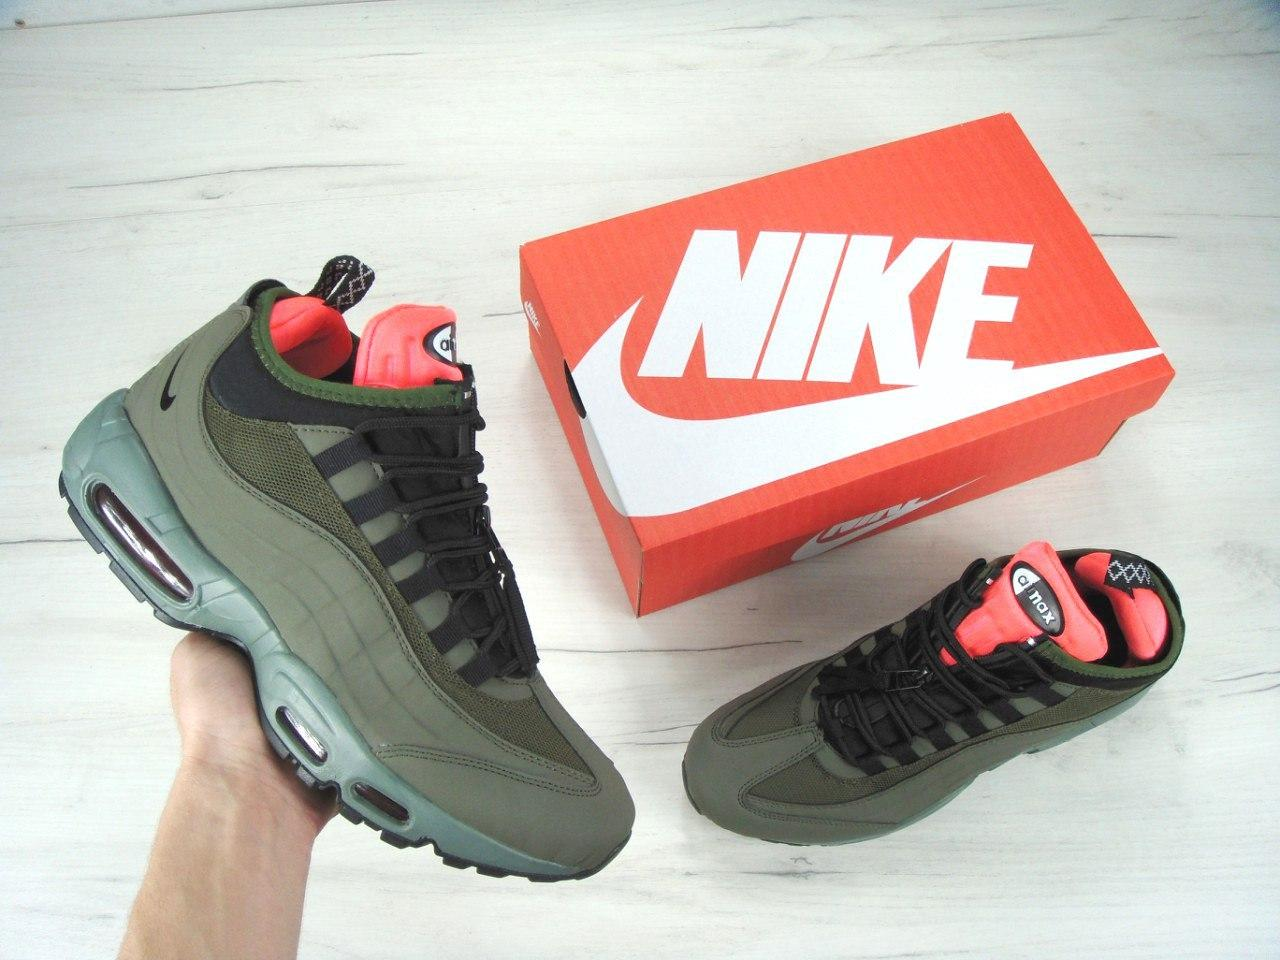 489660f8b619 Мужские кроссовки Nike Air Max 95 Sneakerboot